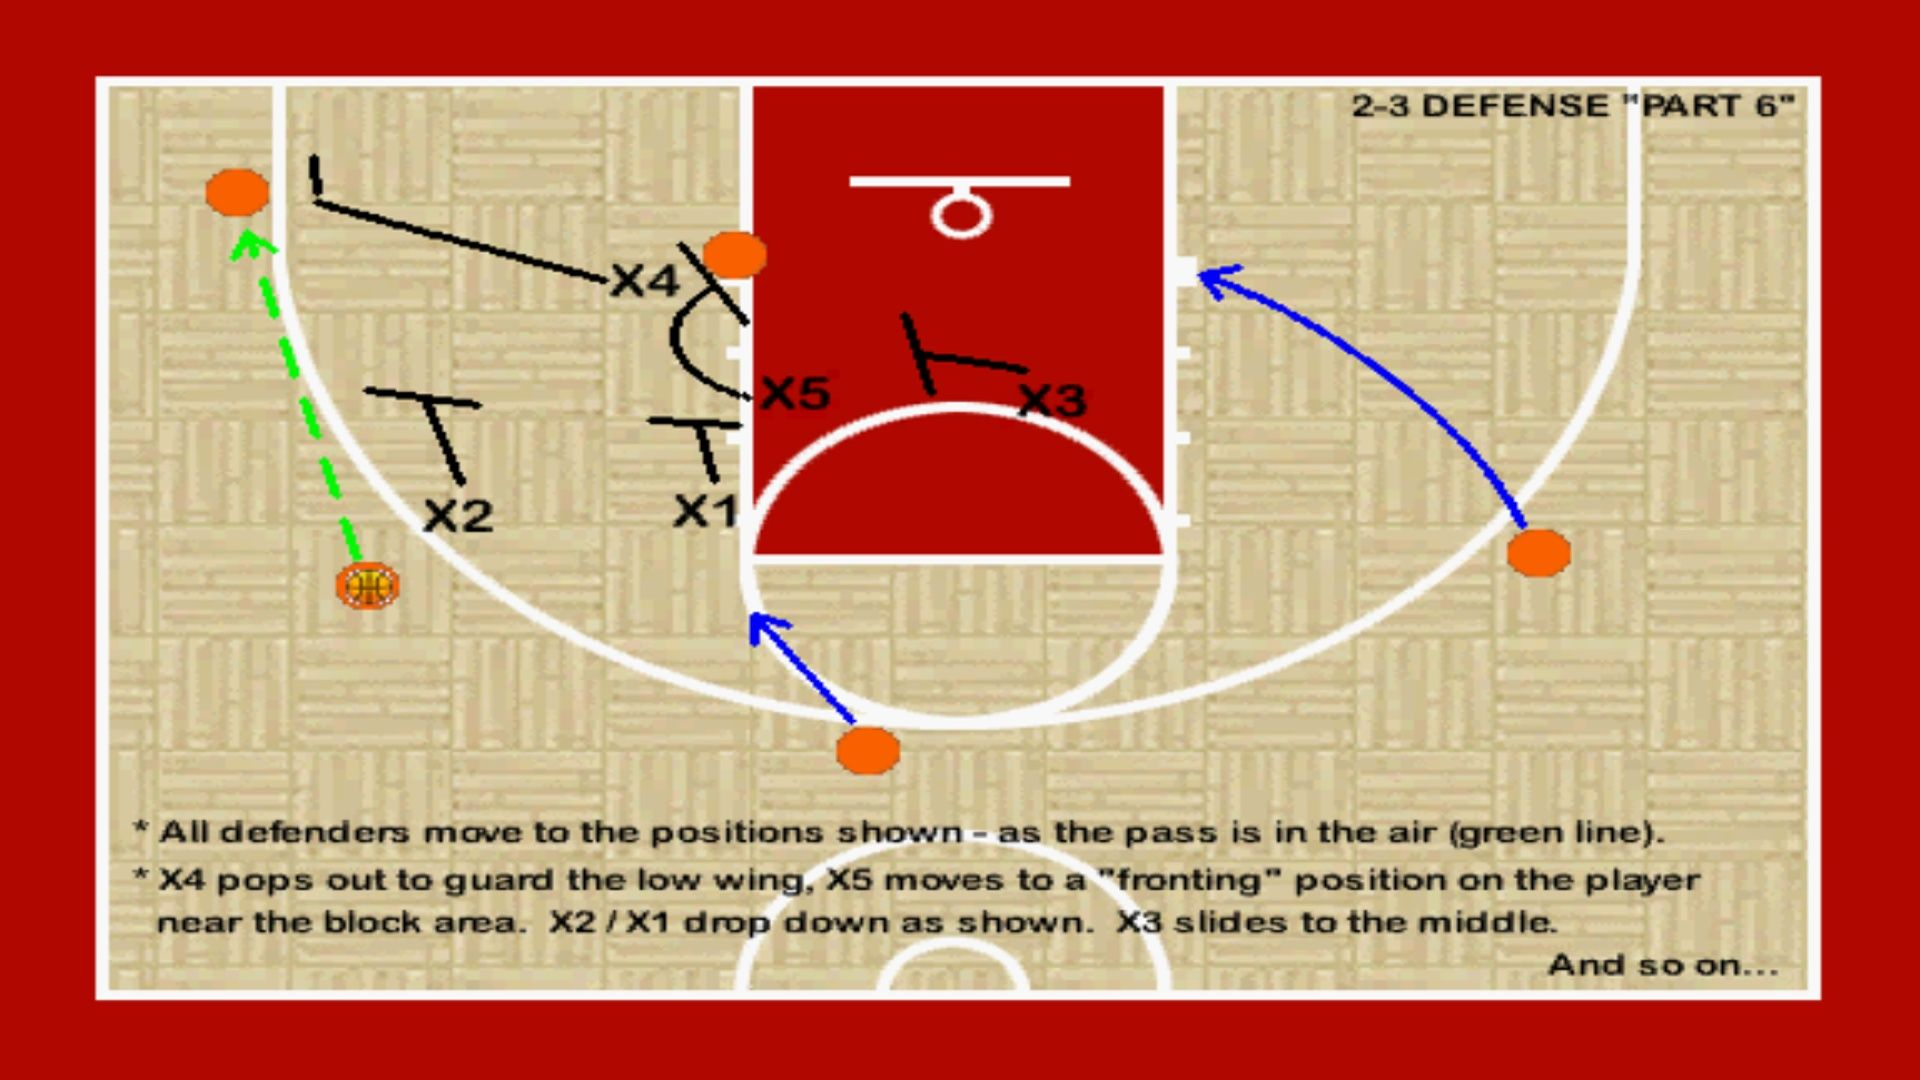 The 2 3 Zone Defense Is One Of The Most Popular Defenses Used In Youth Basketball Youth Basketball Youth Basketball Drills Basketball Skills